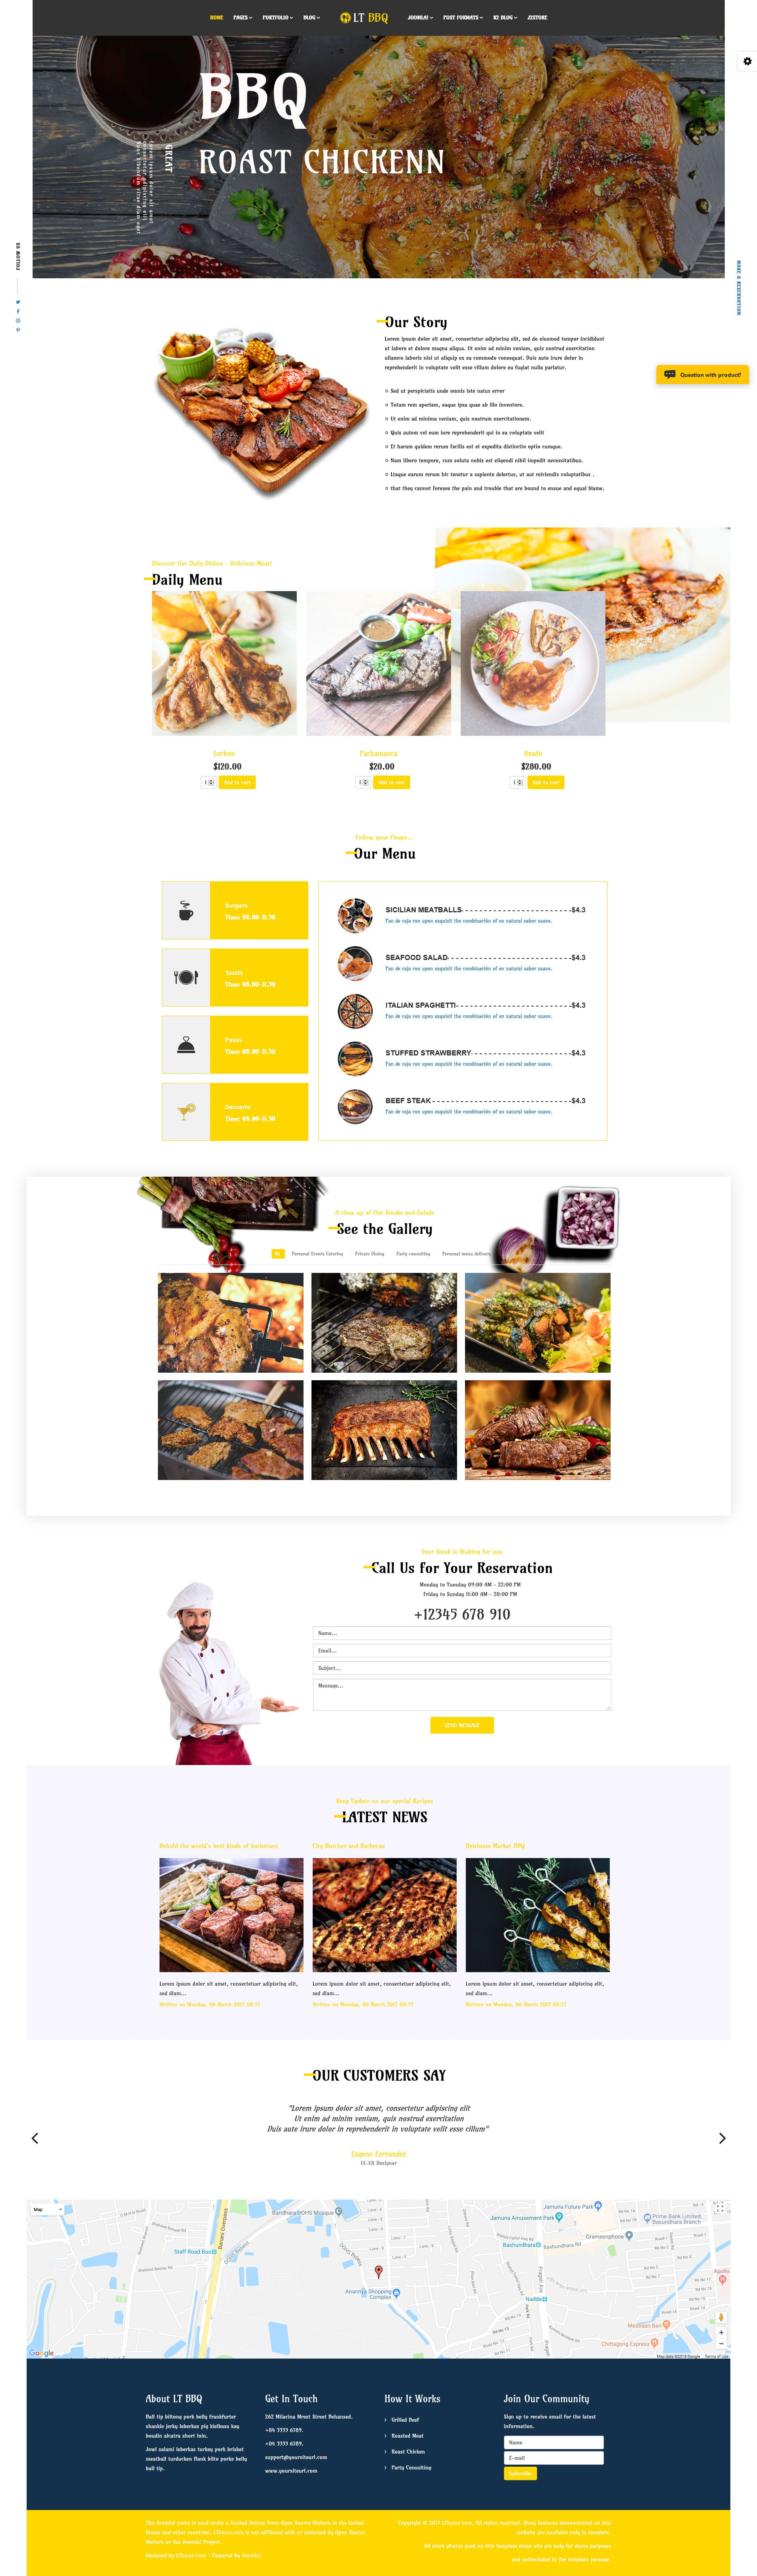 LT BBQ - Premium Barbecue Joomla Template Screenshot 1